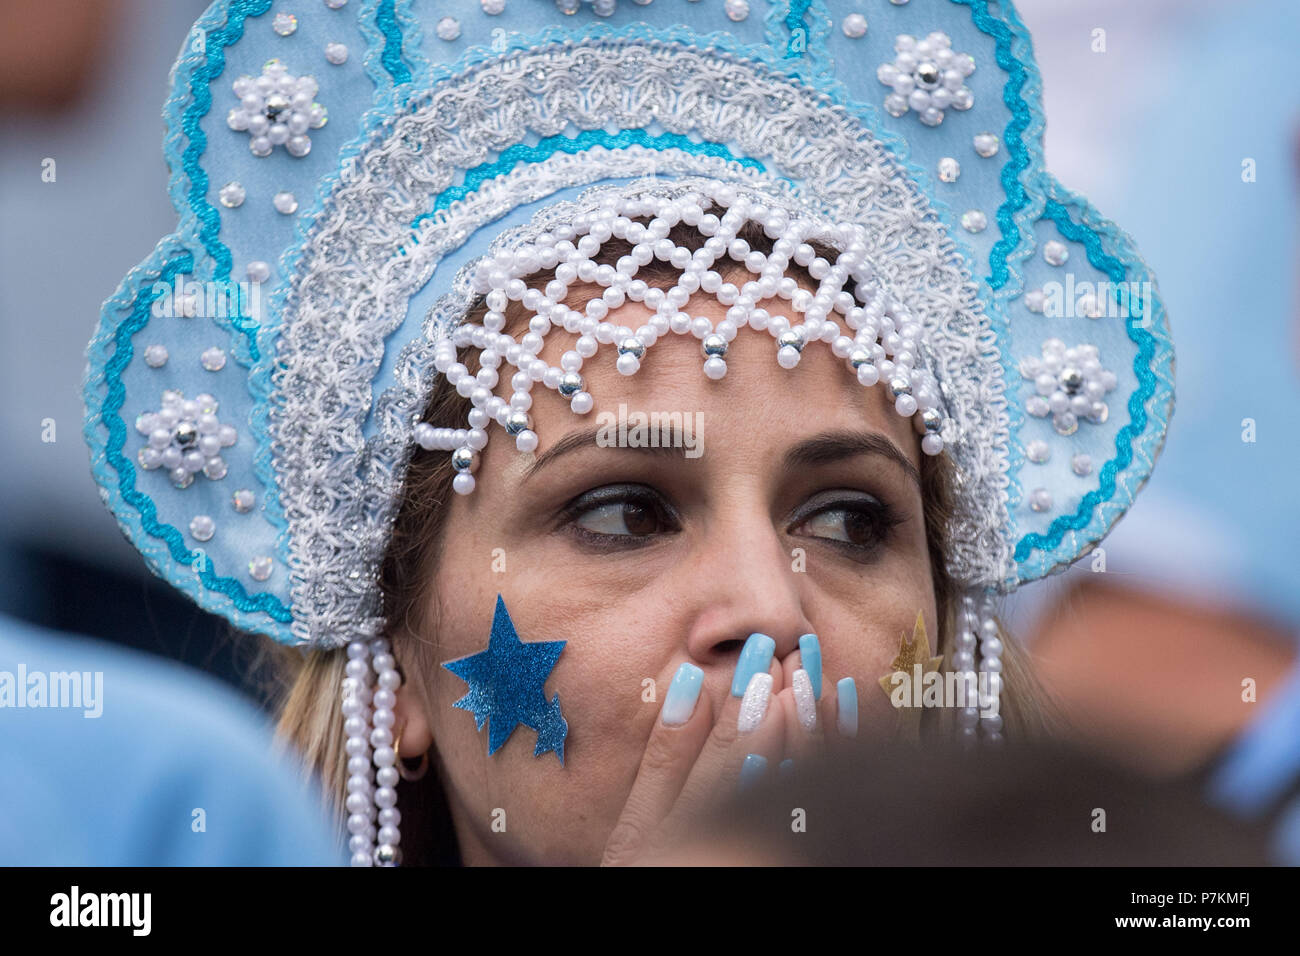 Nizhny Novgorod, Russia. 6th July 2018. A female Uruguayan fan is disappointed, showered, dumbfounded, disappointed, sad, frustrated, frustrated, late-busted, bust, fans, spectators, supporters, supporters, crying, crying, Uruguay (URU) - France (FRA) 0-2, quarterfinals, Game 57, on 06.07.2018 in Nizhny Novgorod; Football World Cup 2018 in Russia from 14.06. - 15.07.2018. | usage worldwide Credit: dpa picture alliance/Alamy Live News Stock Photo